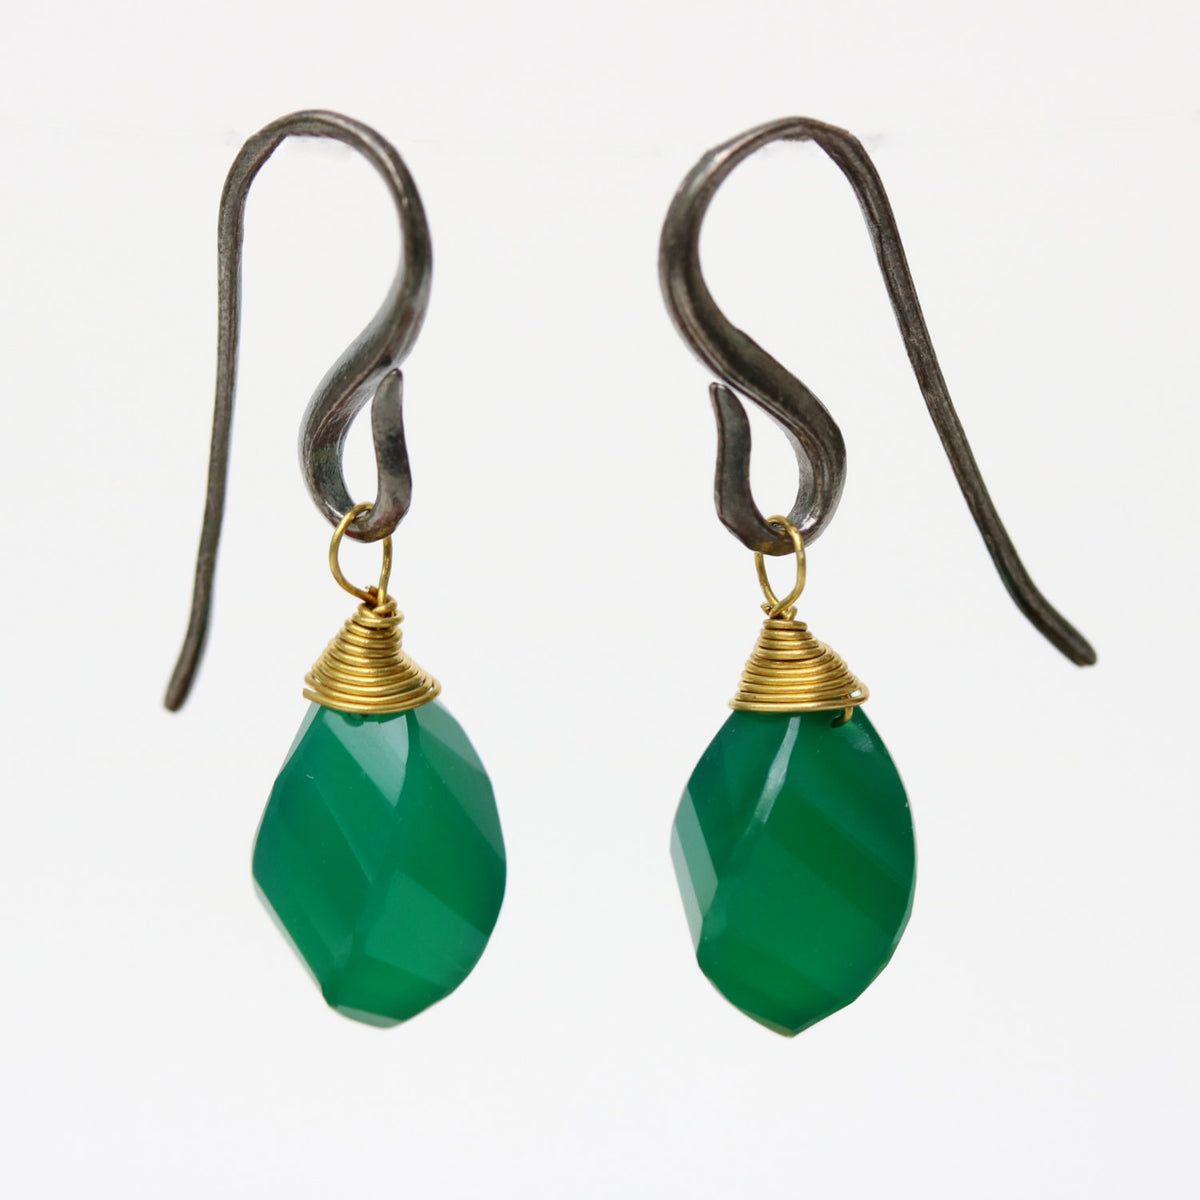 Green onyx drops twist faceted earrings with oxidized sterling silver hooks